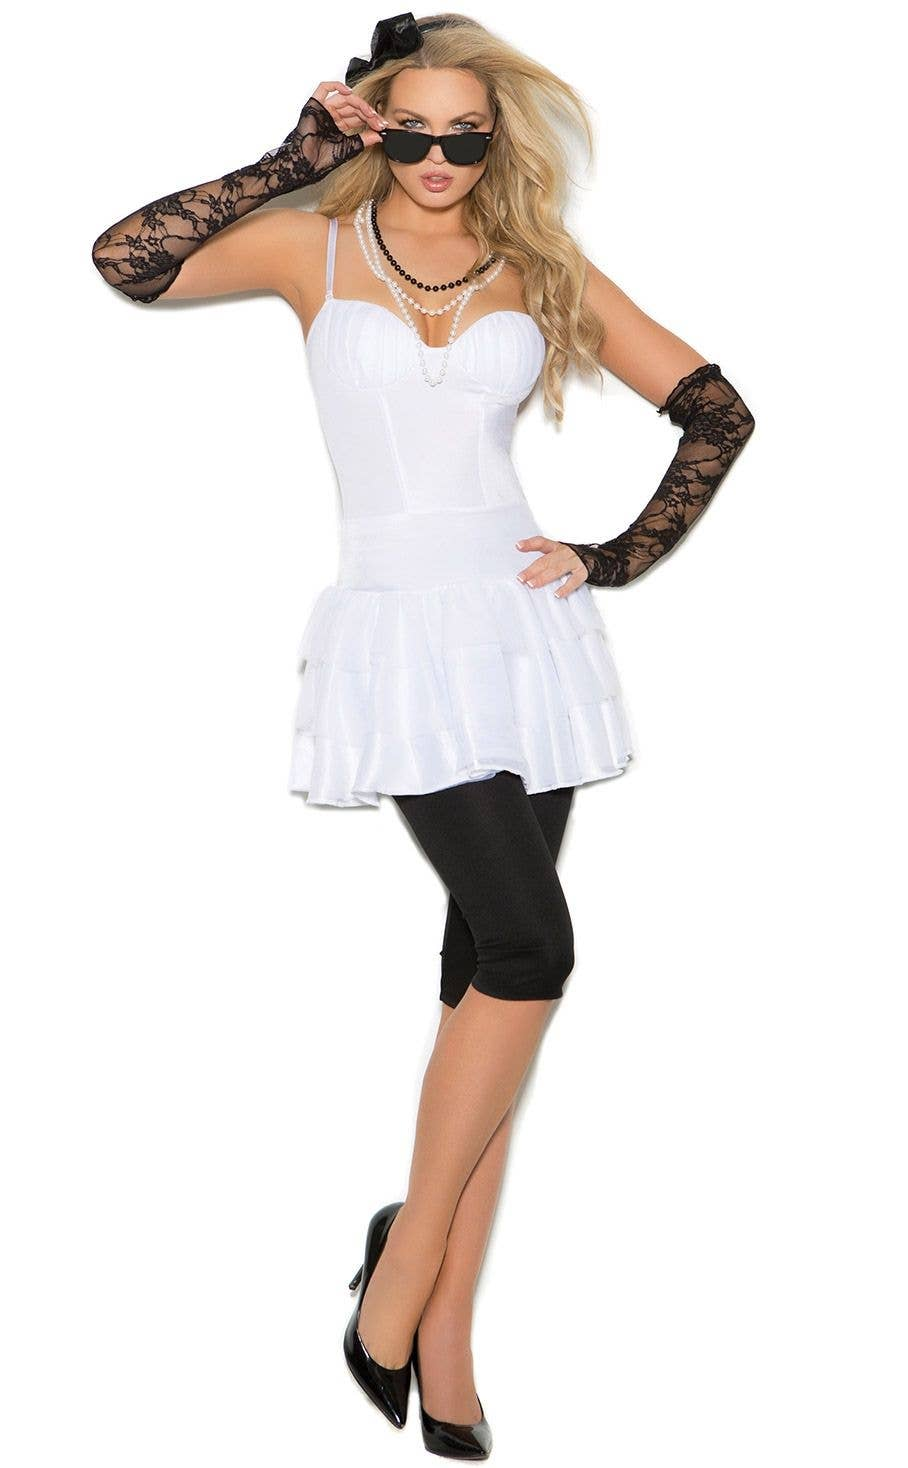 Madonna Like a Virgin Sexy Women s Dress Up Costume Front c56db38d175e